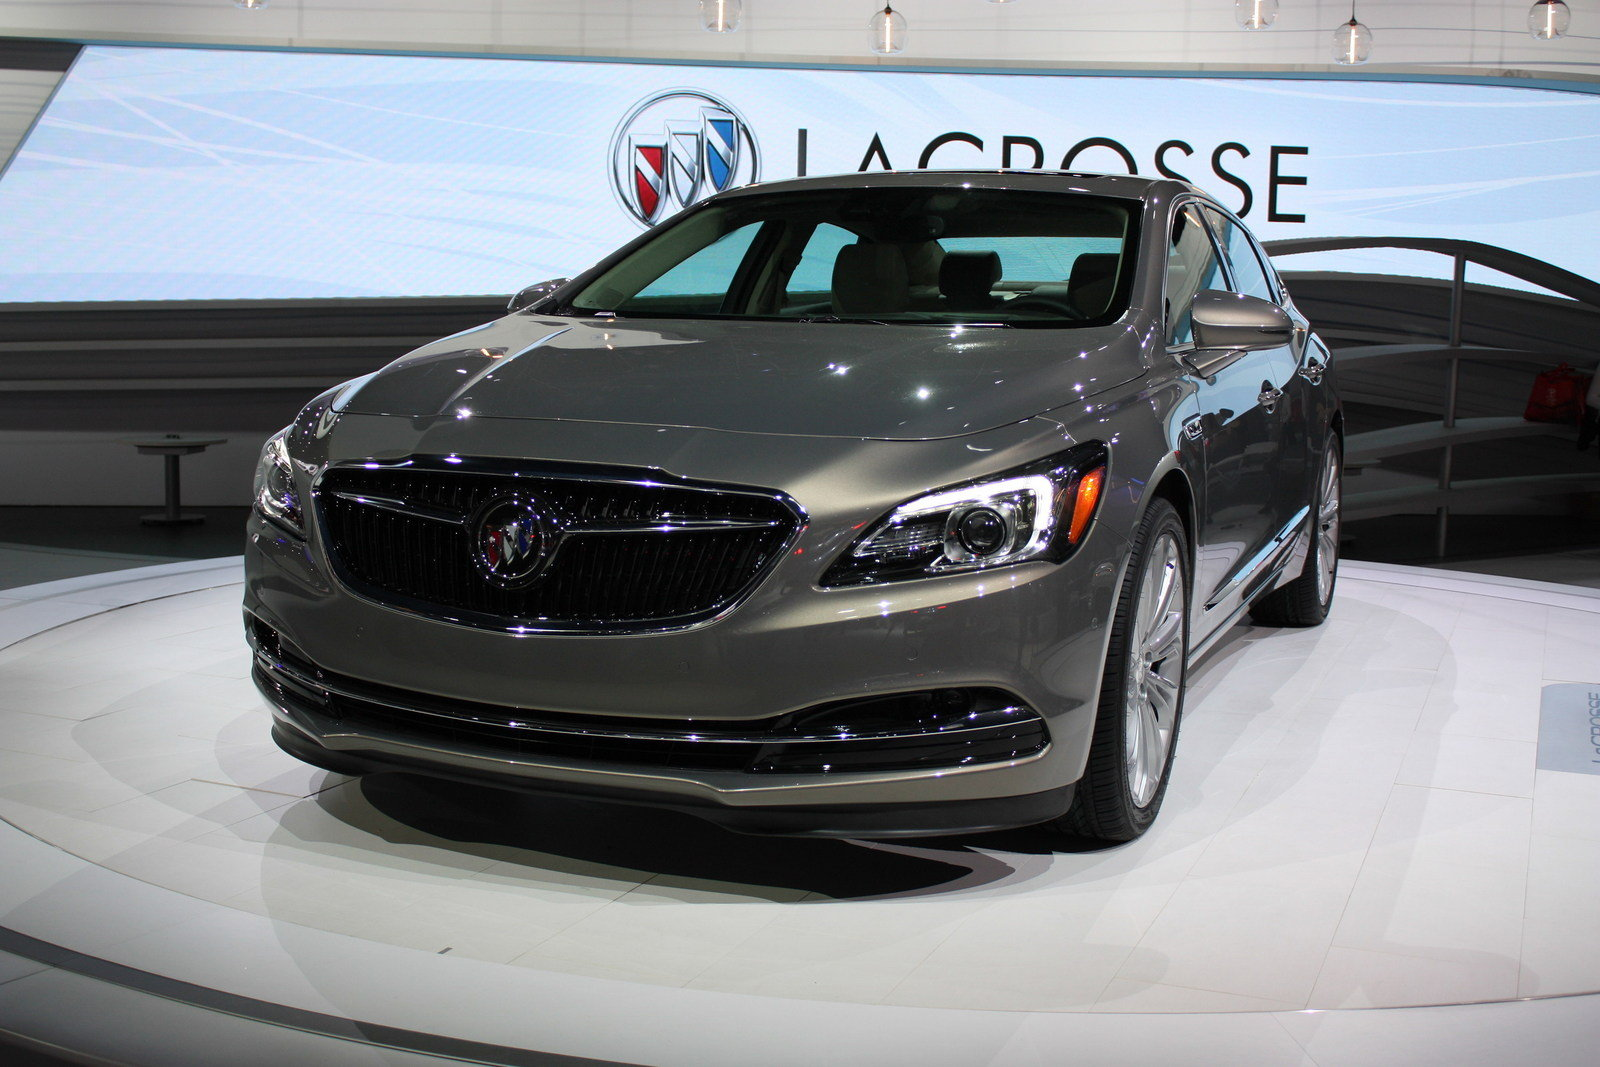 2017 buick lacrosse picture 656376 car review top speed. Black Bedroom Furniture Sets. Home Design Ideas